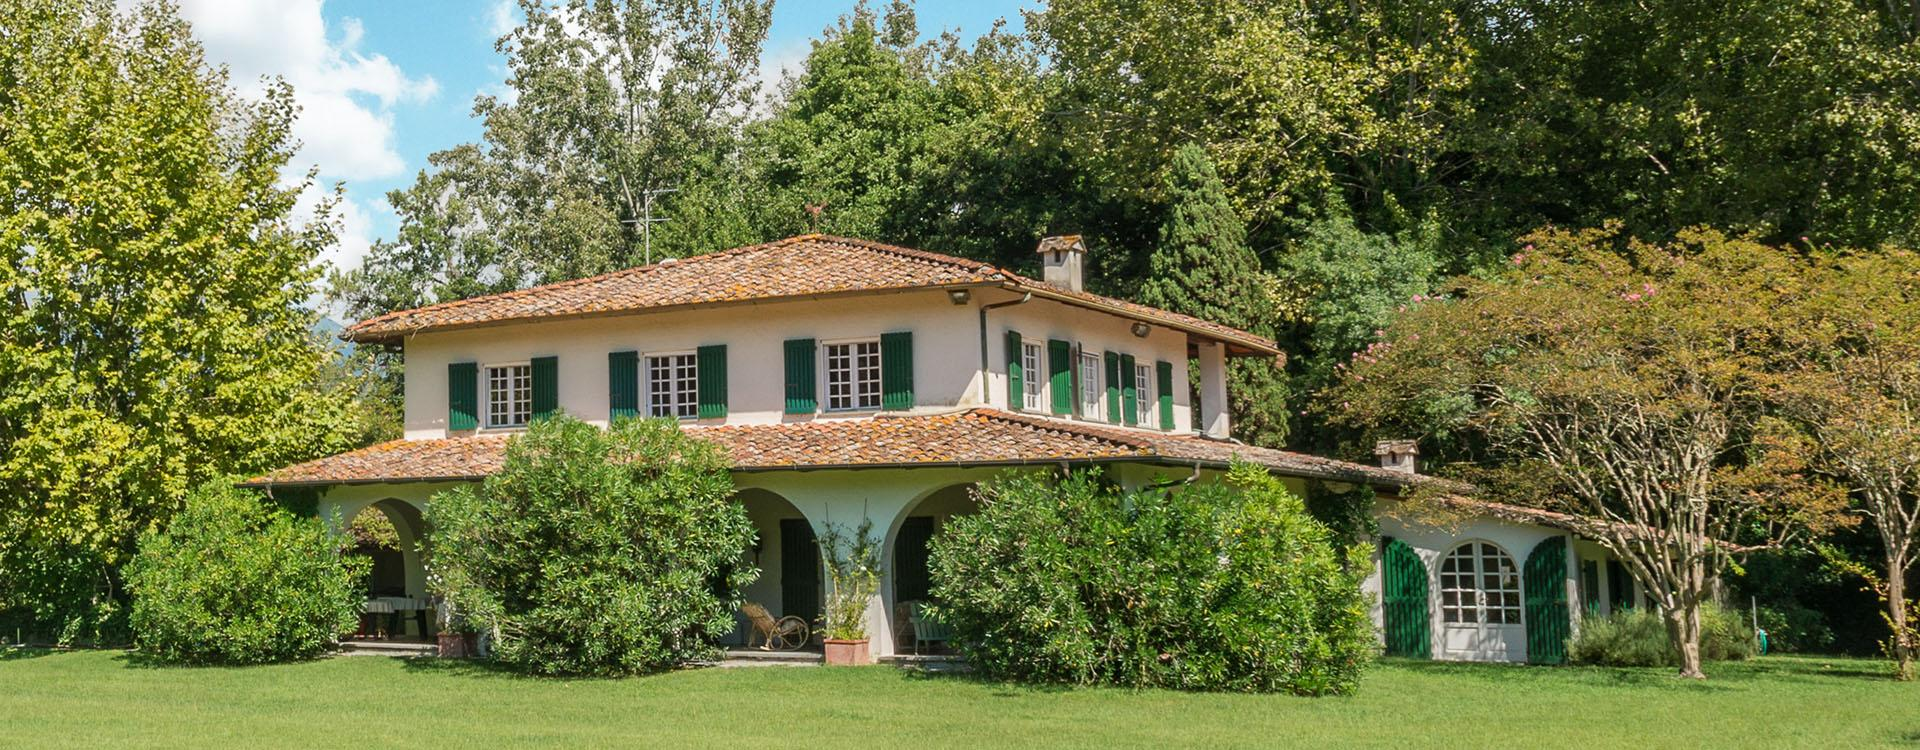 Villa surrounded by greenery for sale in Forte dei Marmi with swimming pool and large park